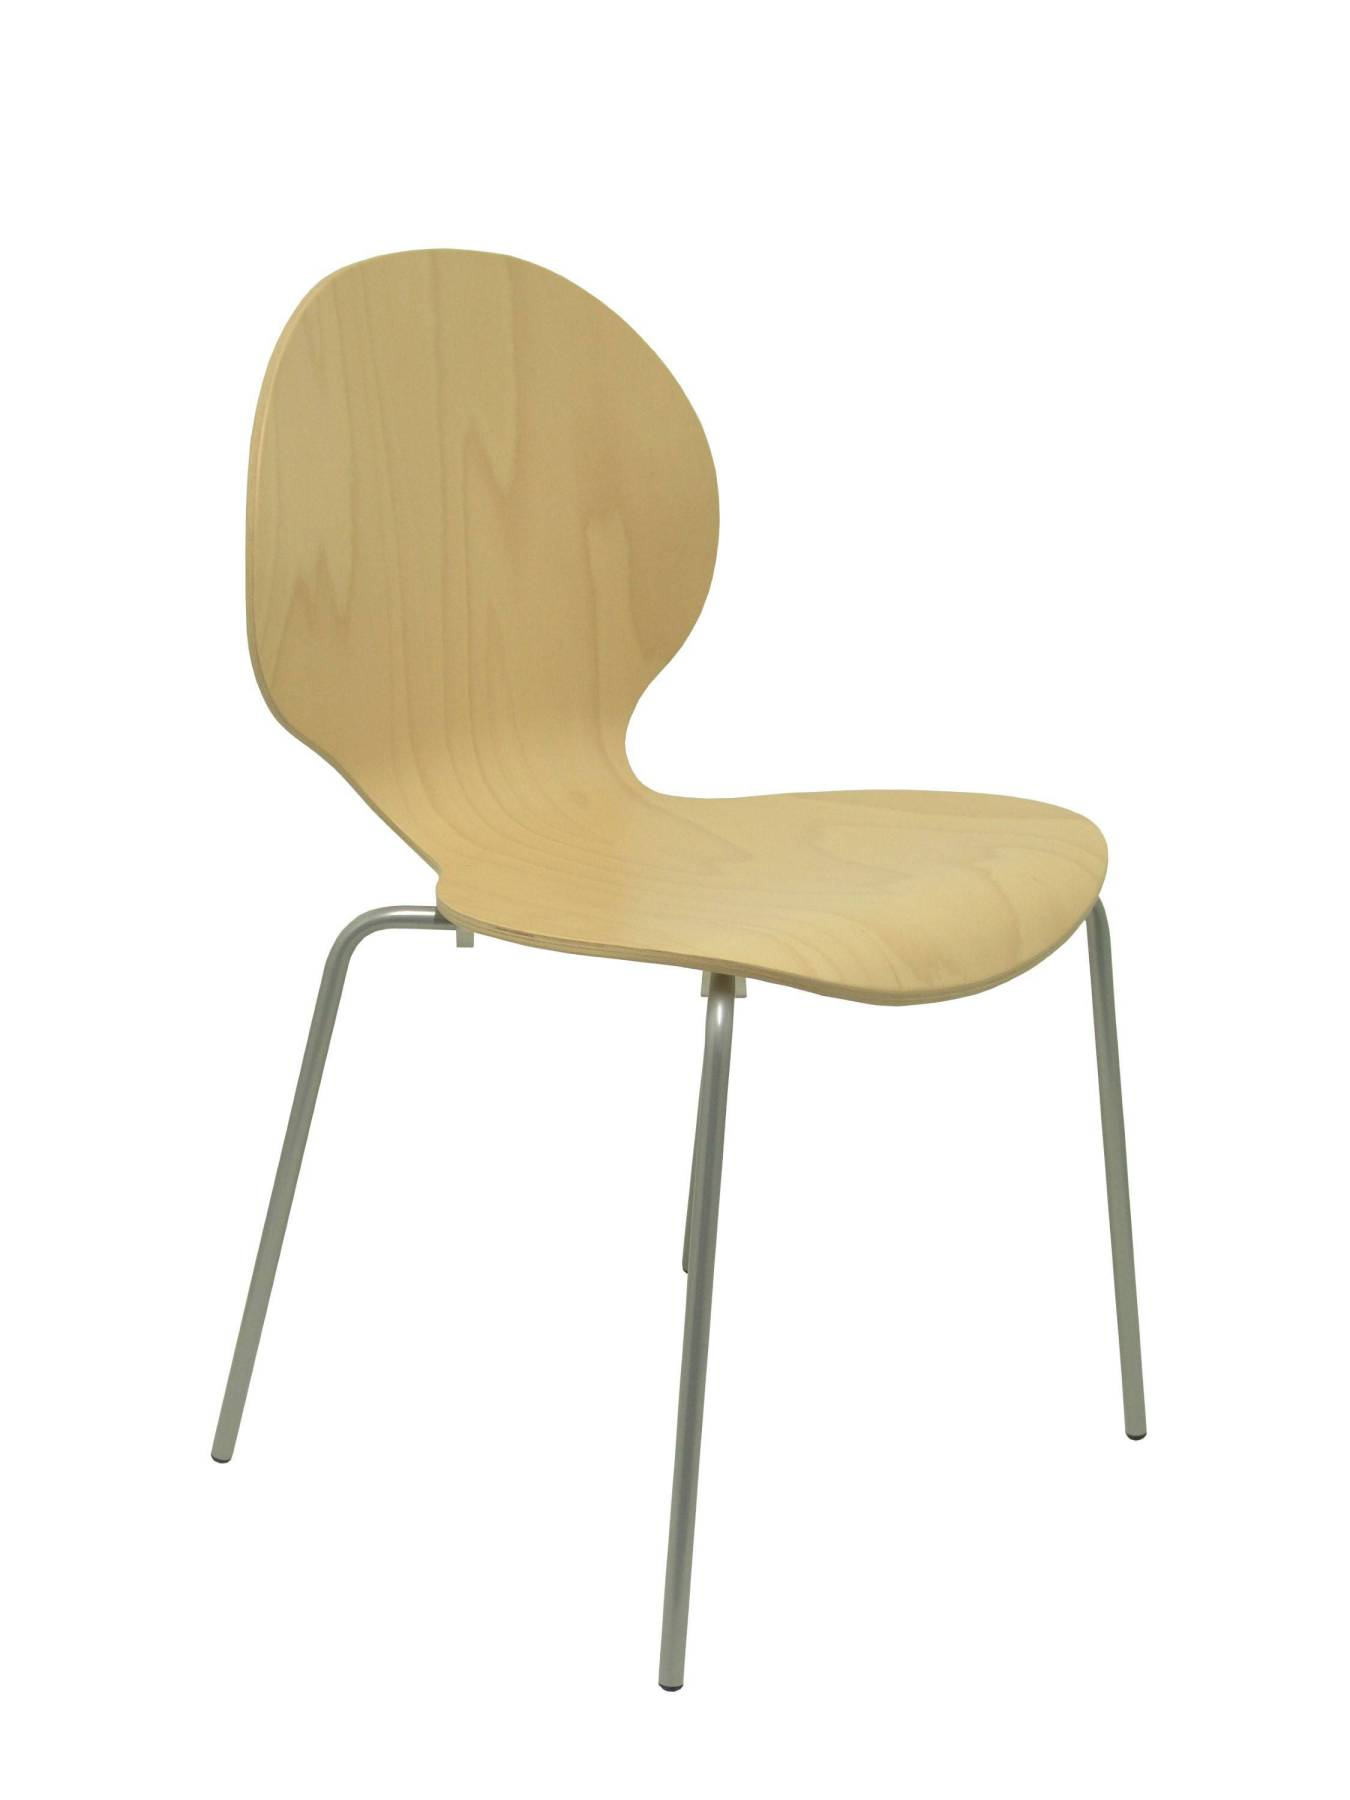 Pack 4 chairs confident structure Gray Seat and backrest beech wood PIQUERAS & CURLED Model Peñas|  - title=